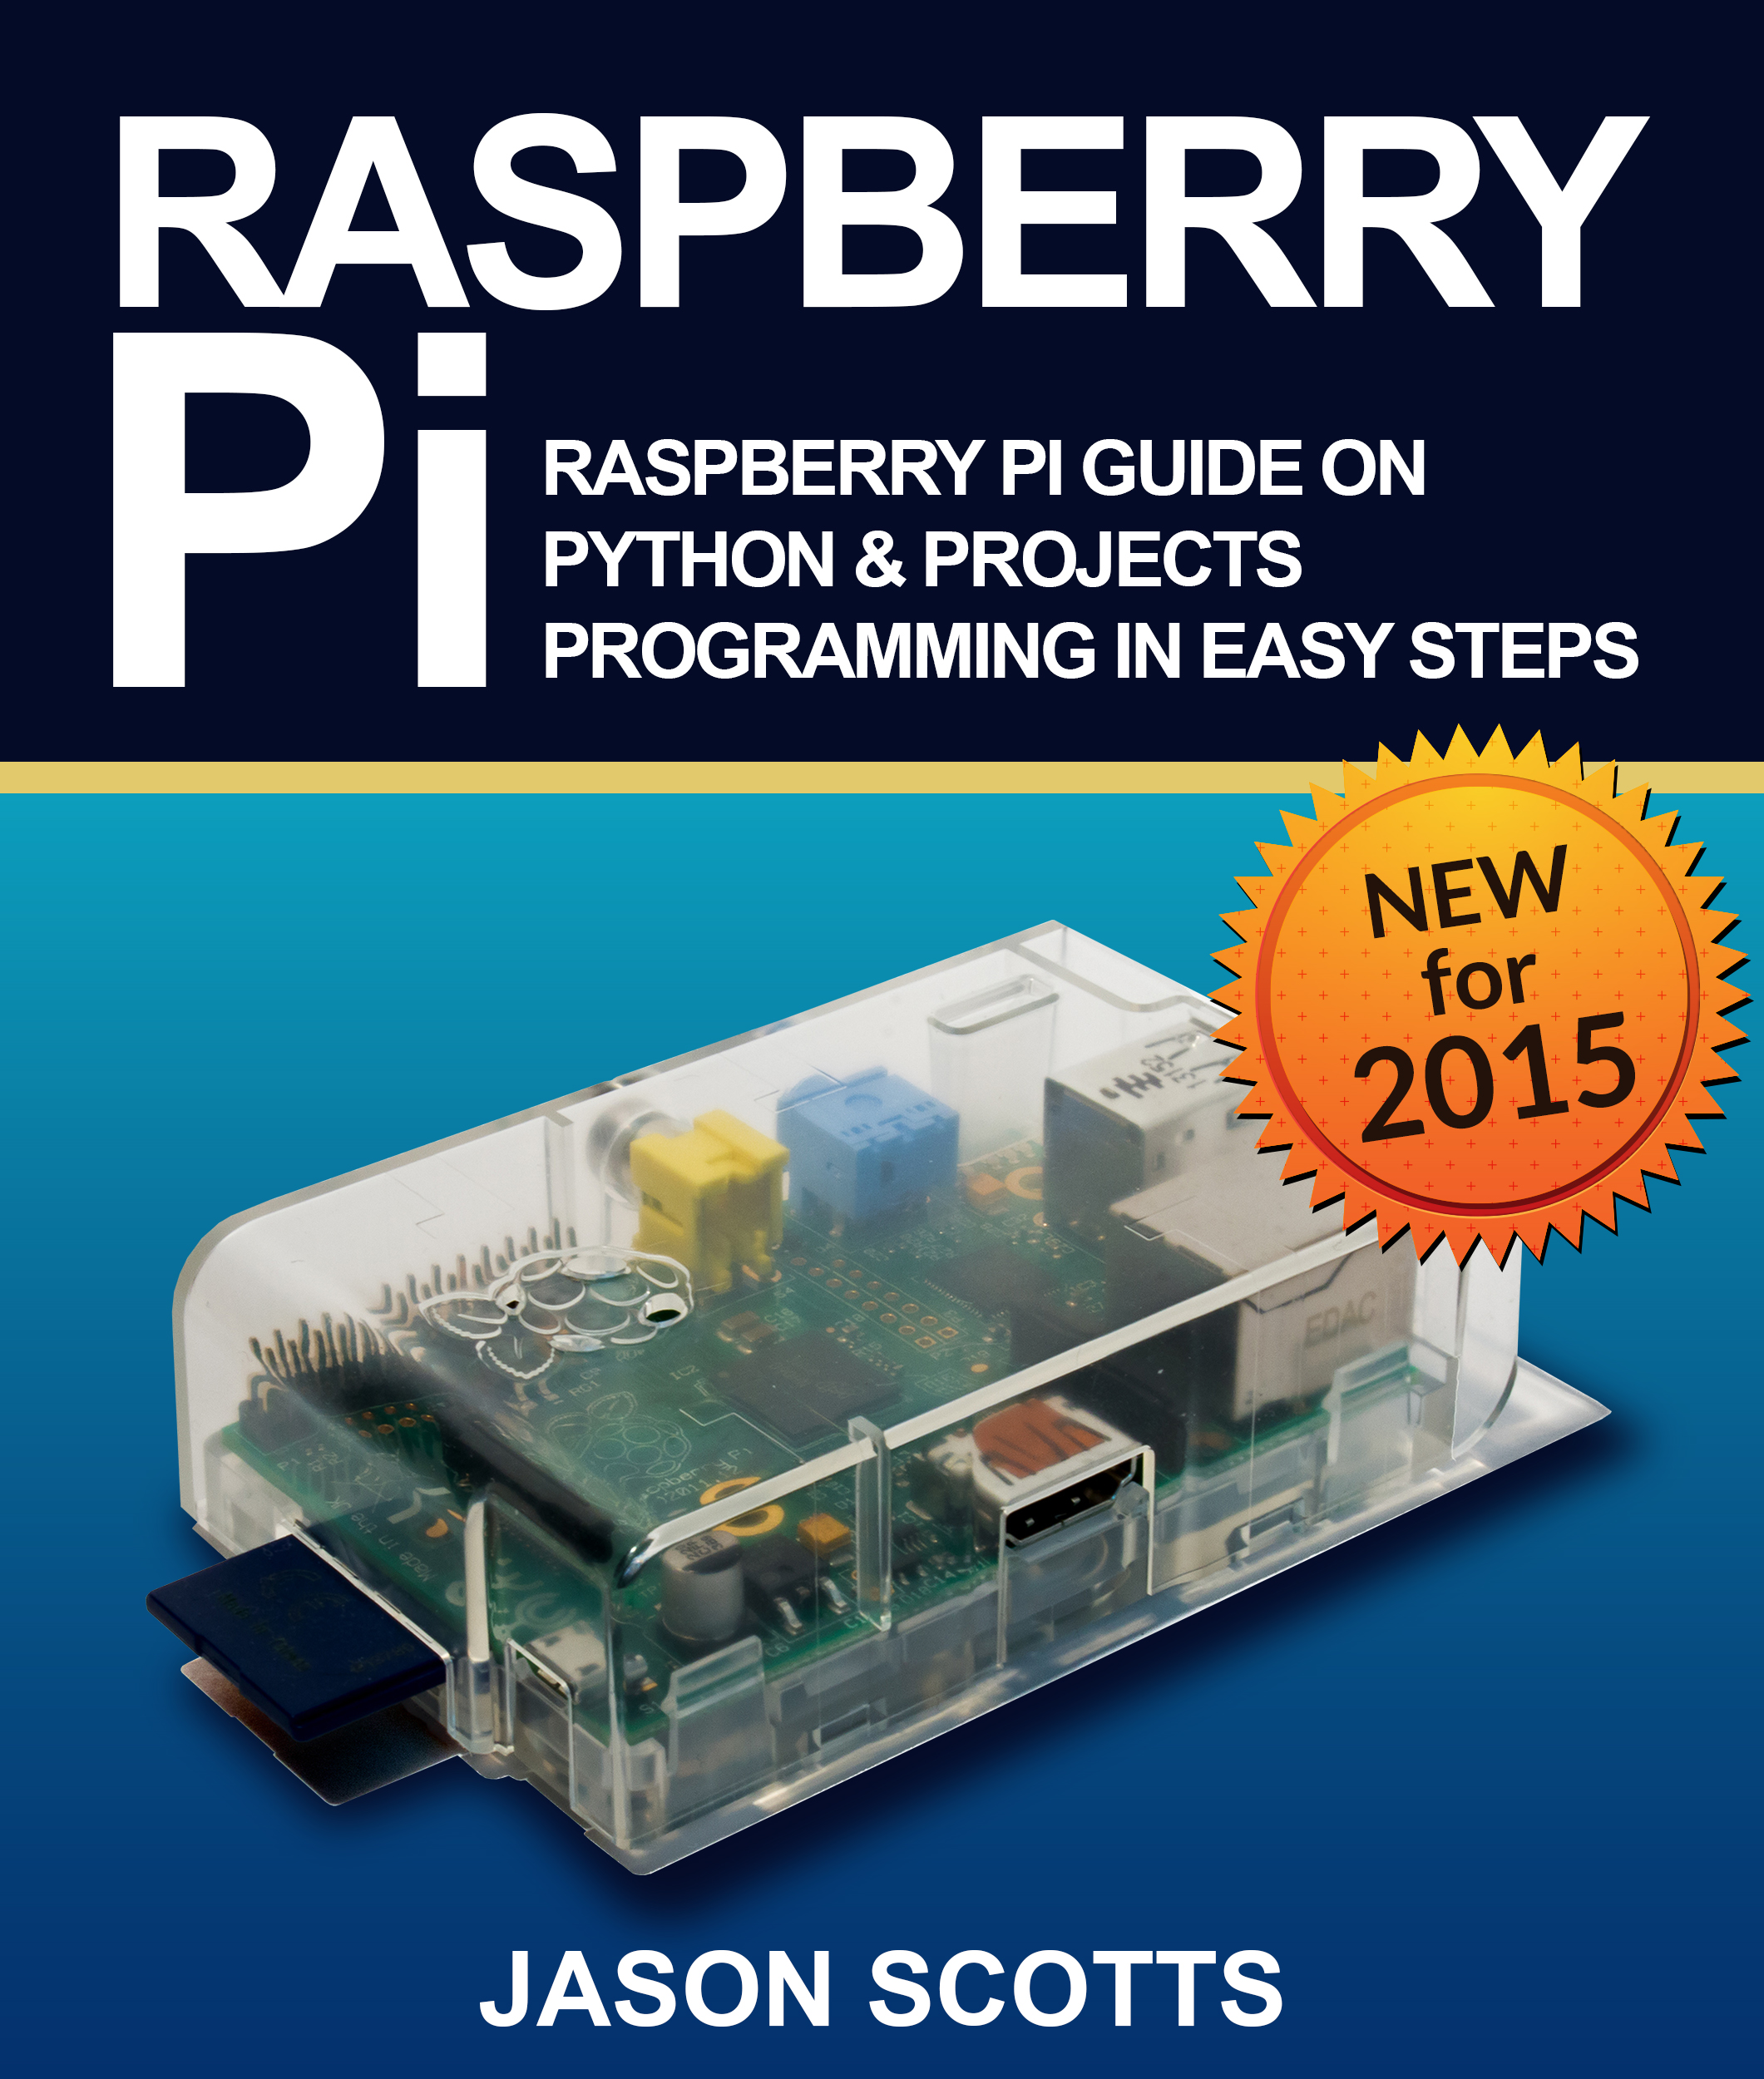 Projects for raspberry pi